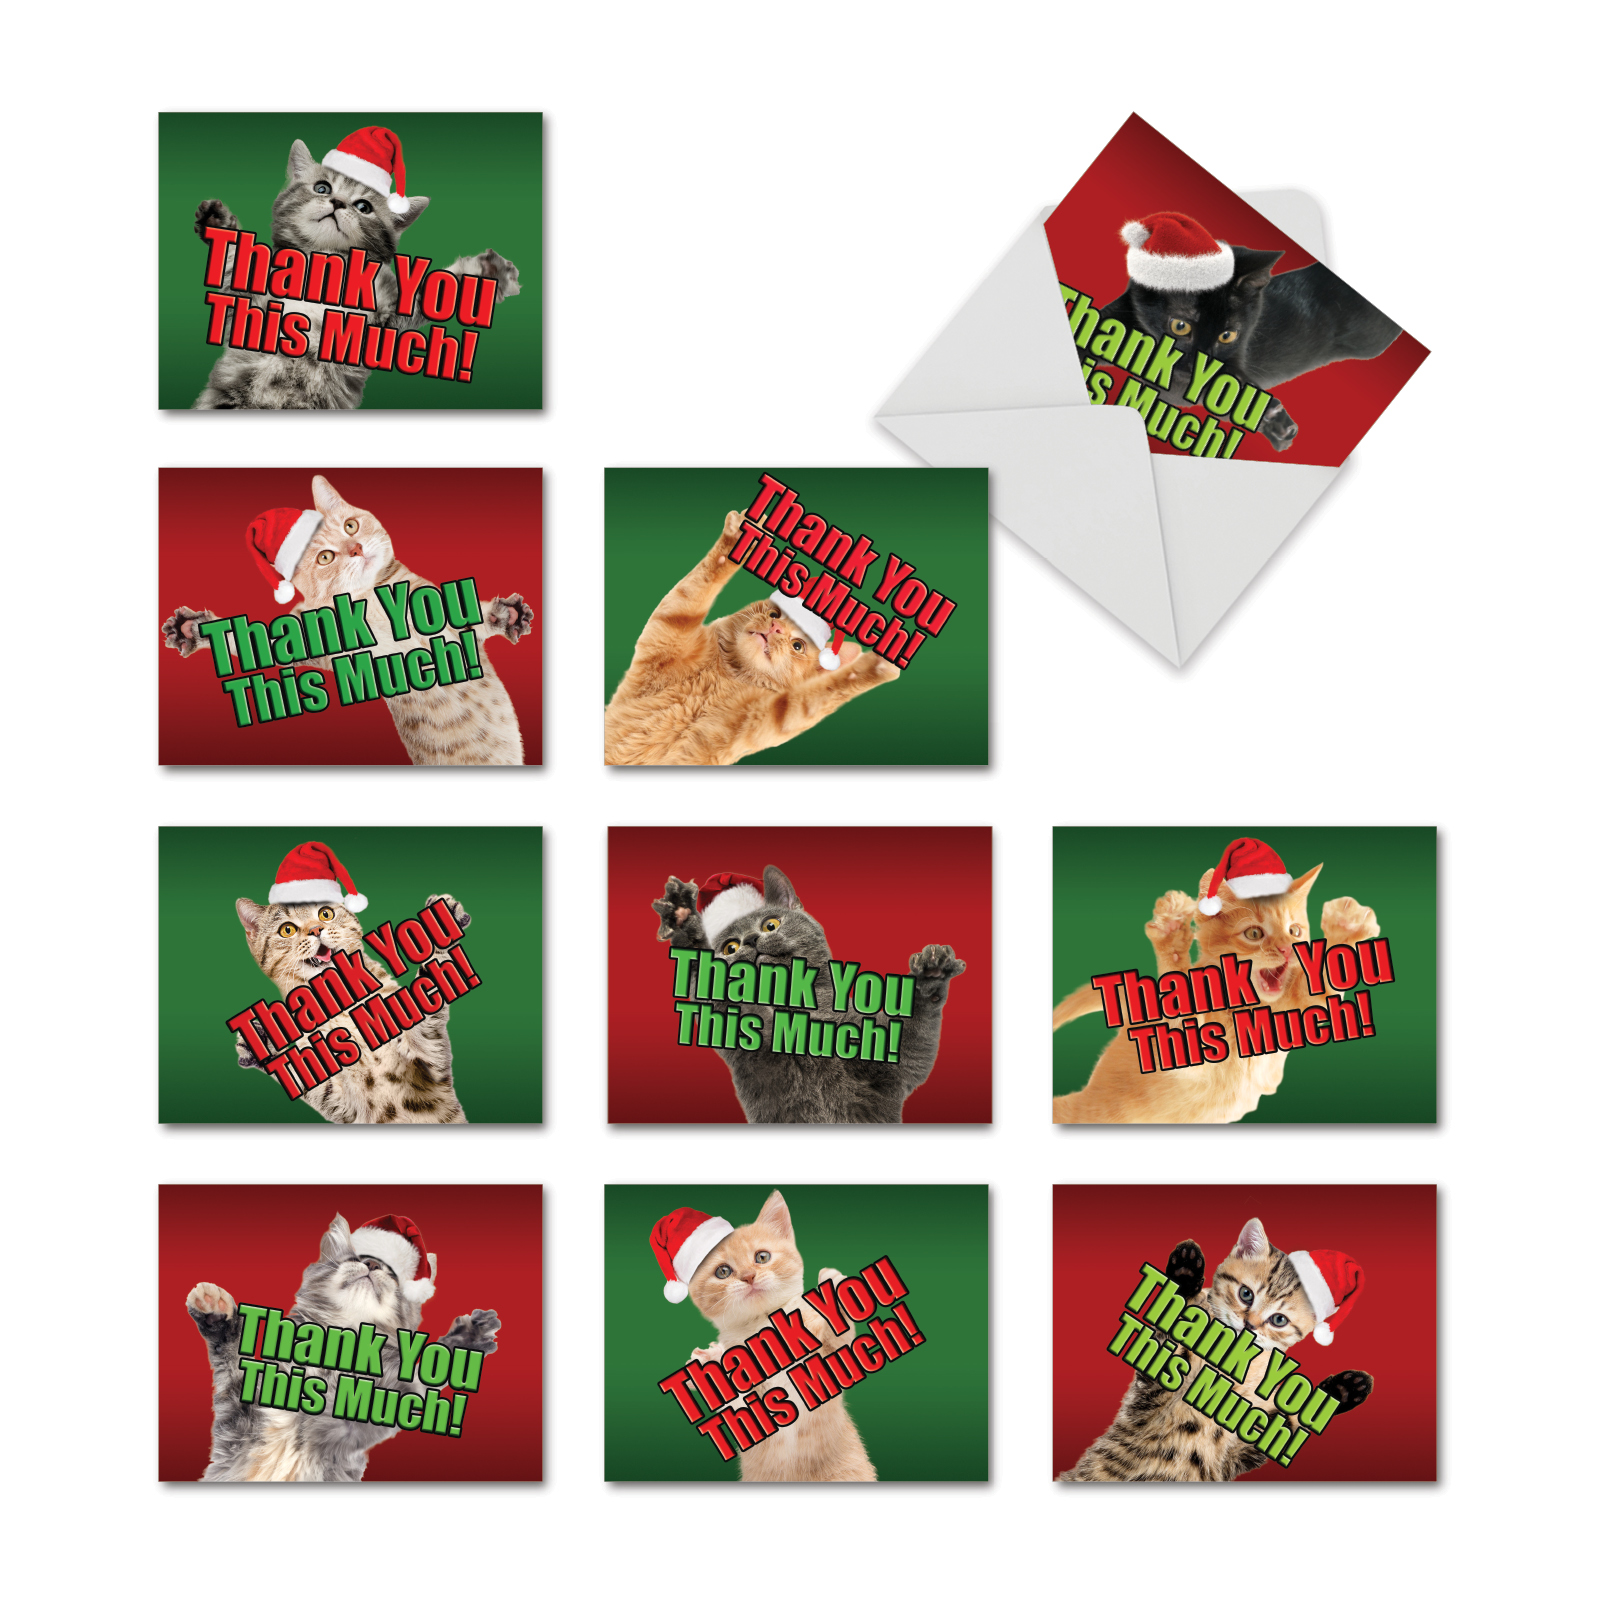 'M2368XTB-B1x10 M2368XTB CHRISTMAS CAT BIG THANKS' 10 Assorted Christmas Thank You Cards Thank You This Much! with Envelopes by The Best Card Company